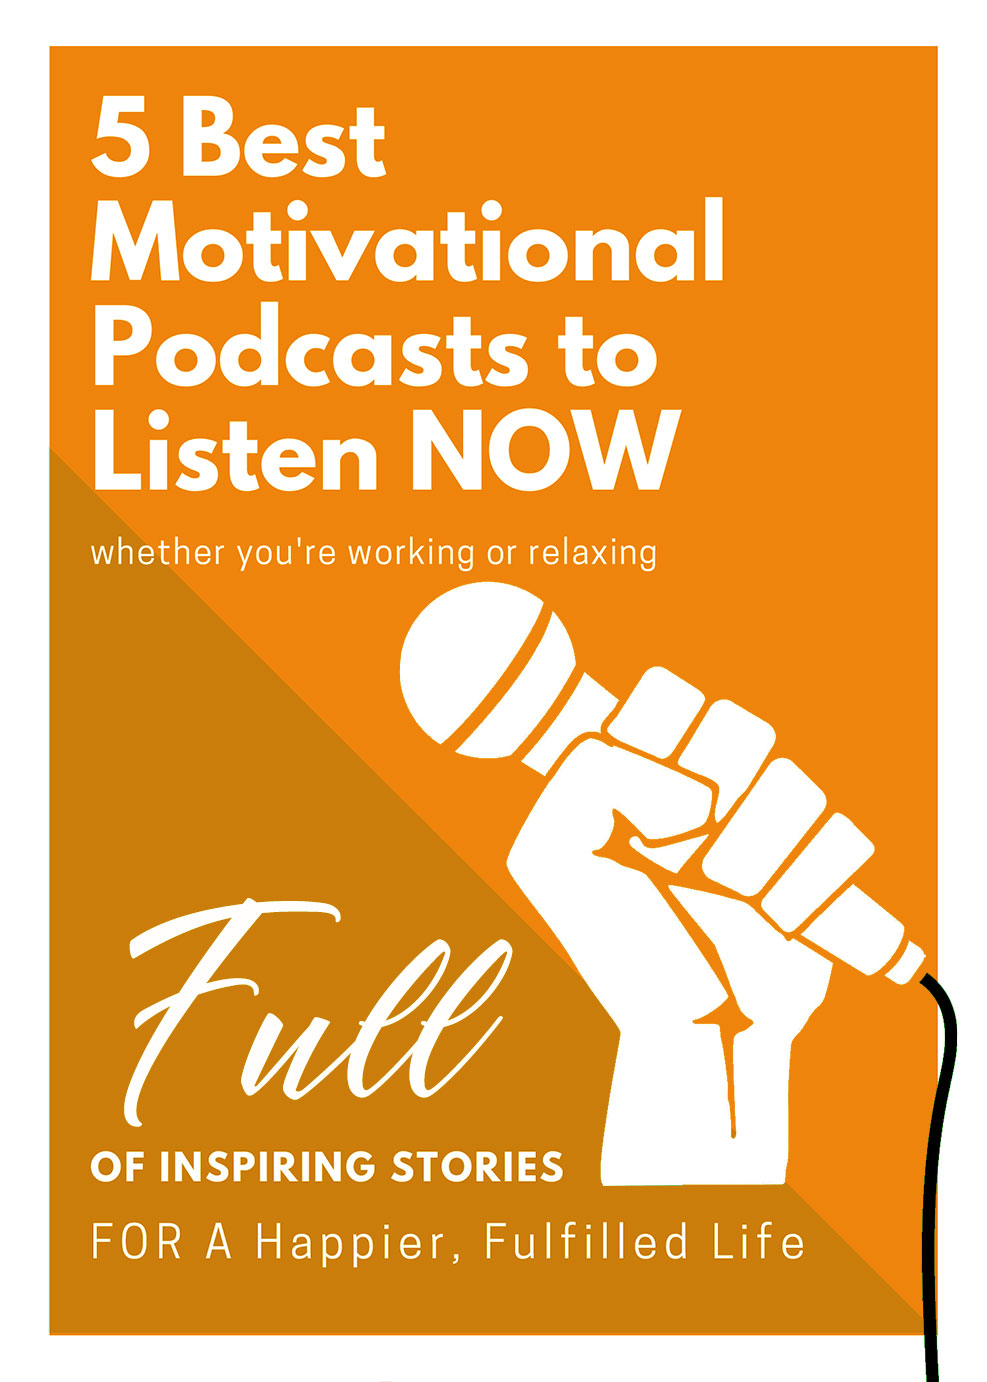 5 Best Motivational Podcasts